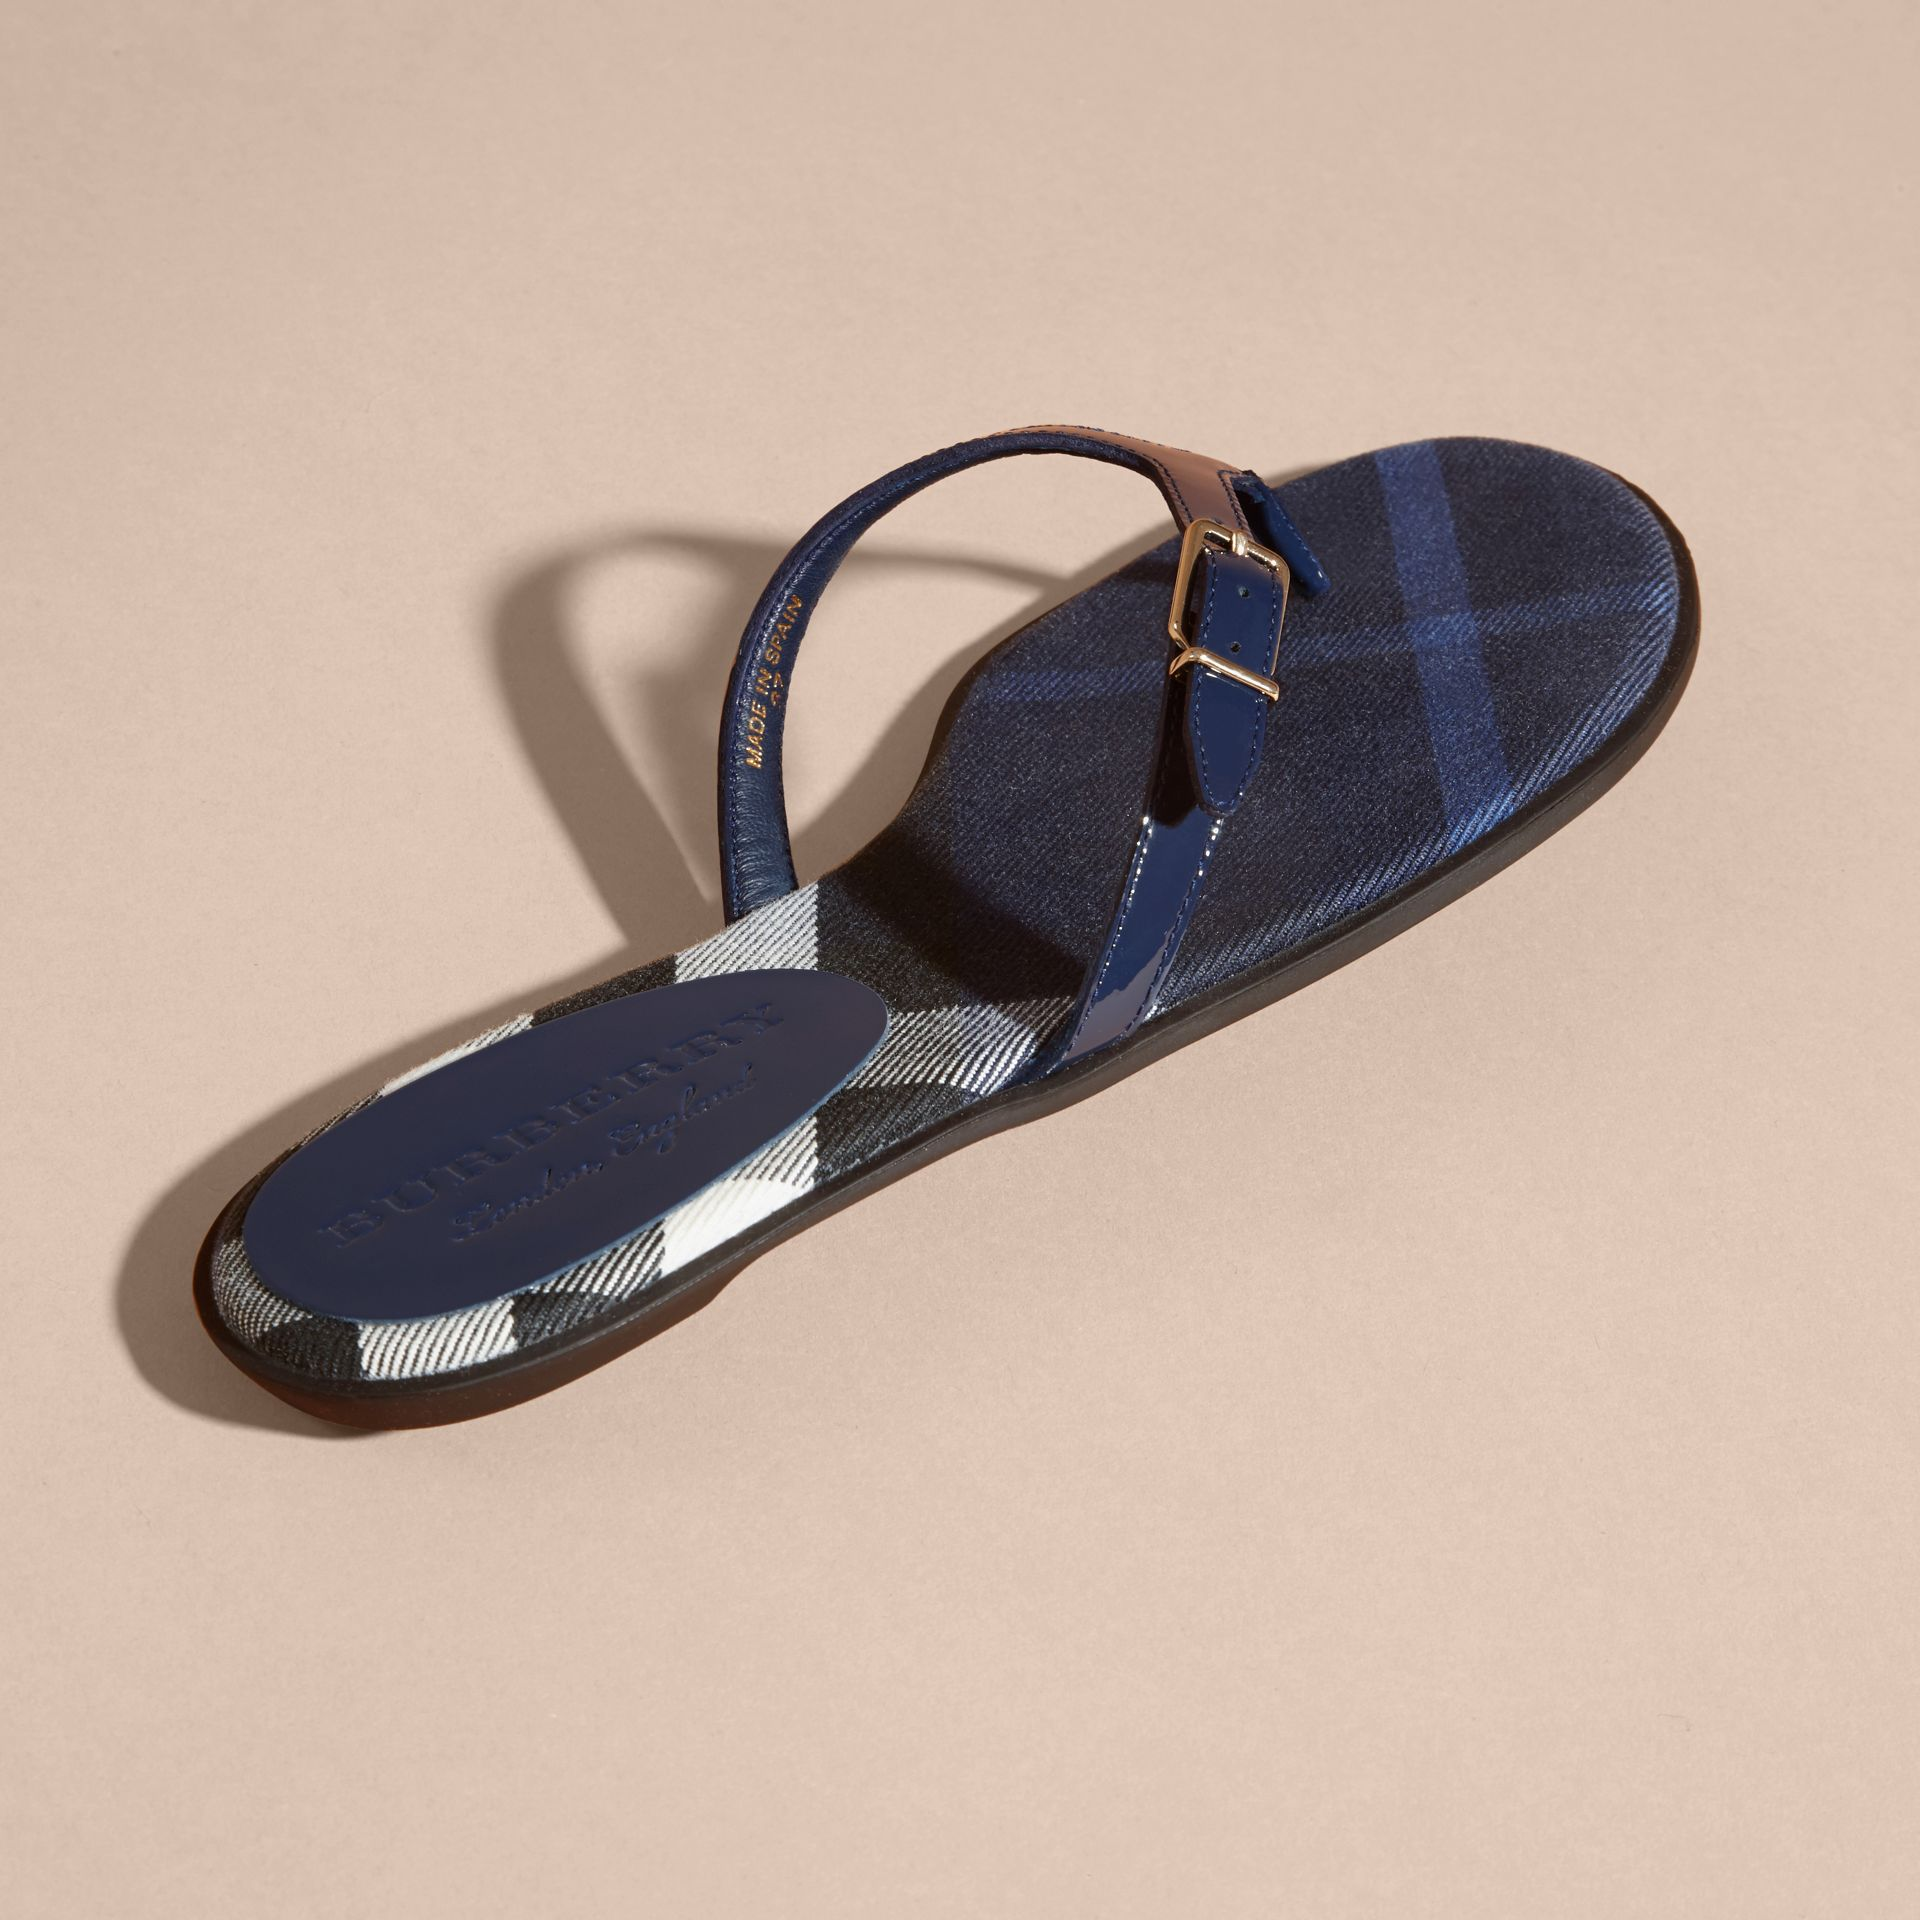 House Check and Patent Leather Sandals in Indigo Blue - Women | Burberry Australia - gallery image 4